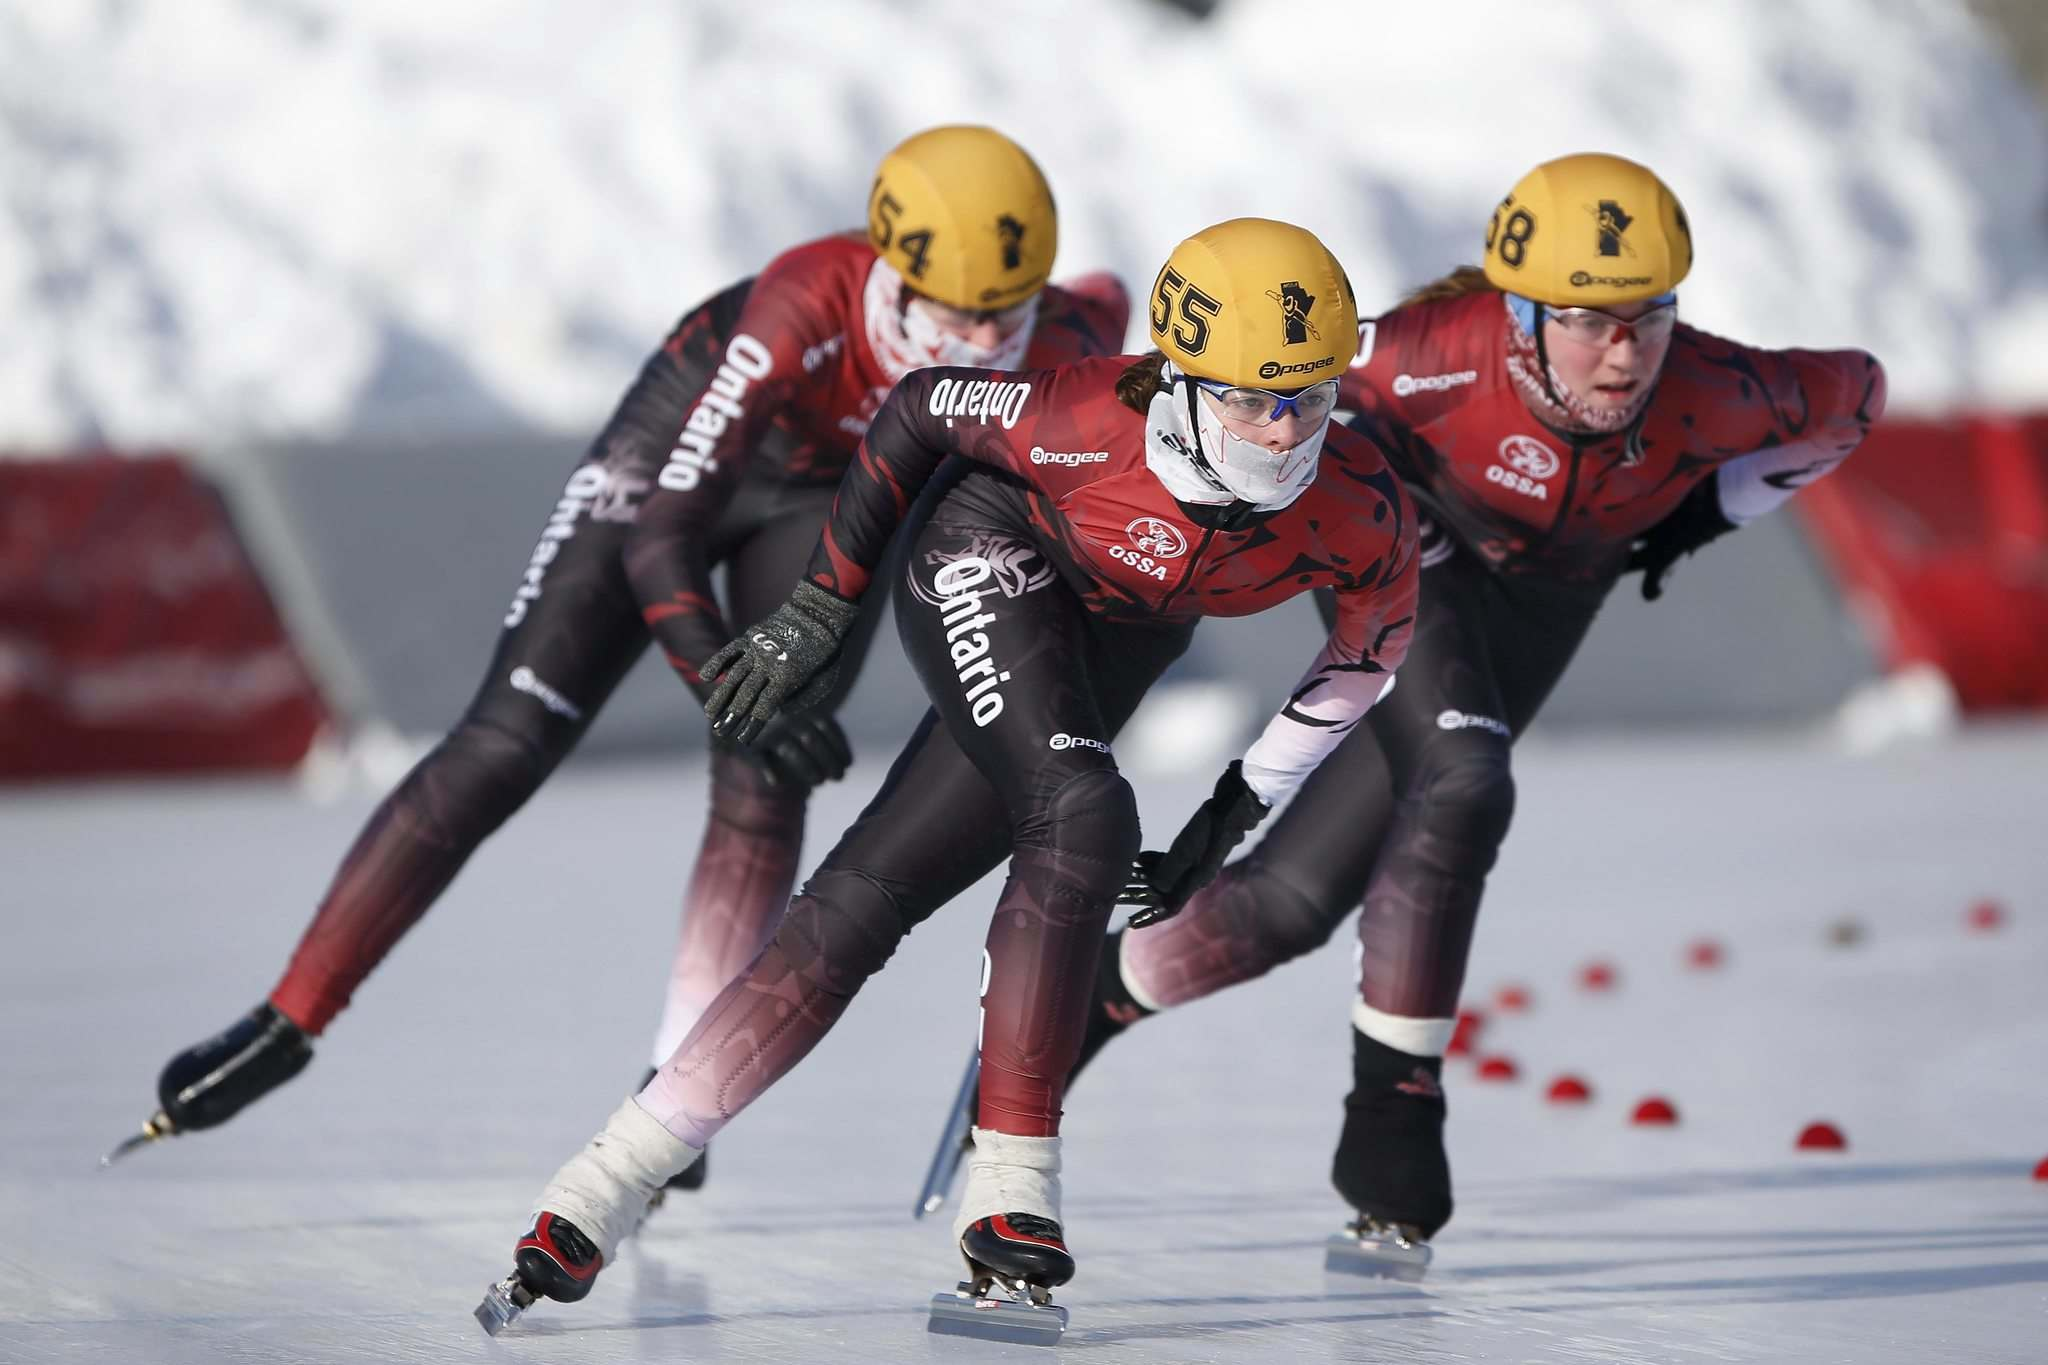 JOHN WOODS / WINNIPEG FREE PRESSOntario&#39;s Alison Milne (155) leads her teammates Emily Wood (158) and Sarah Murray (154) in the 5 lap pursuit at the Canadian Age Class Long Track Championships at the Susan Auch Oval in Winnipeg Sunday.</p>